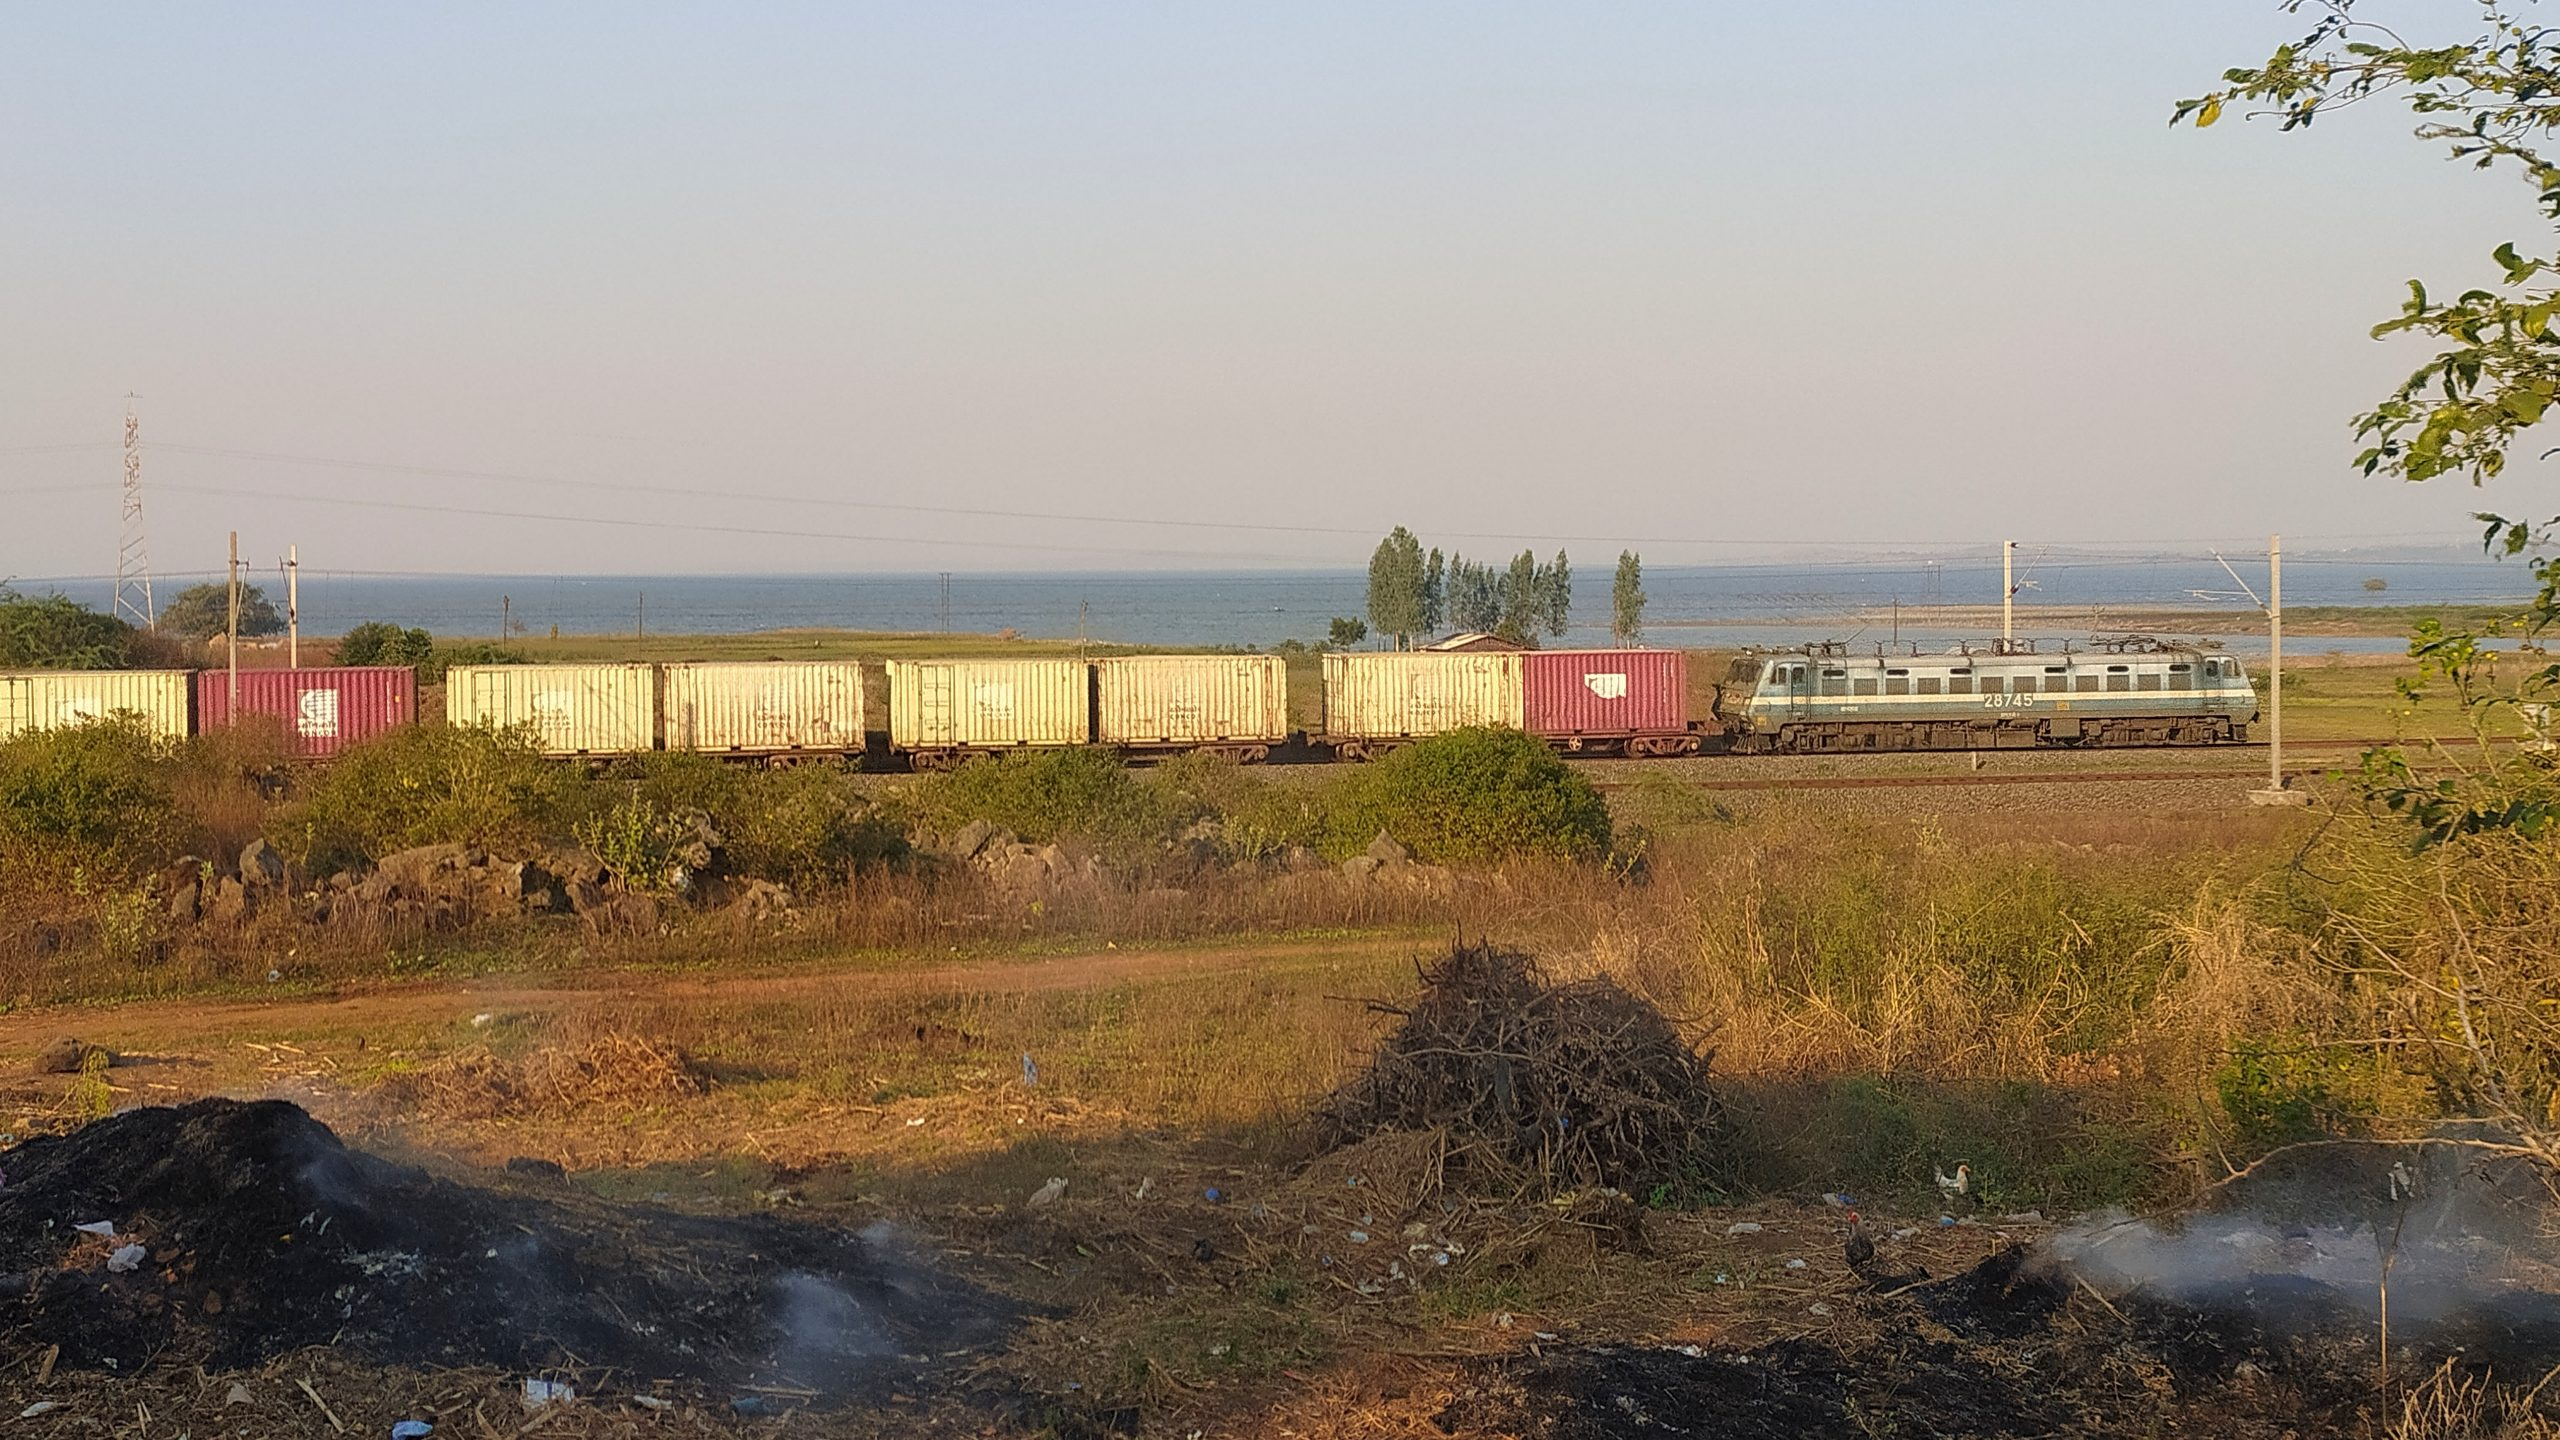 A goods train passing through a place